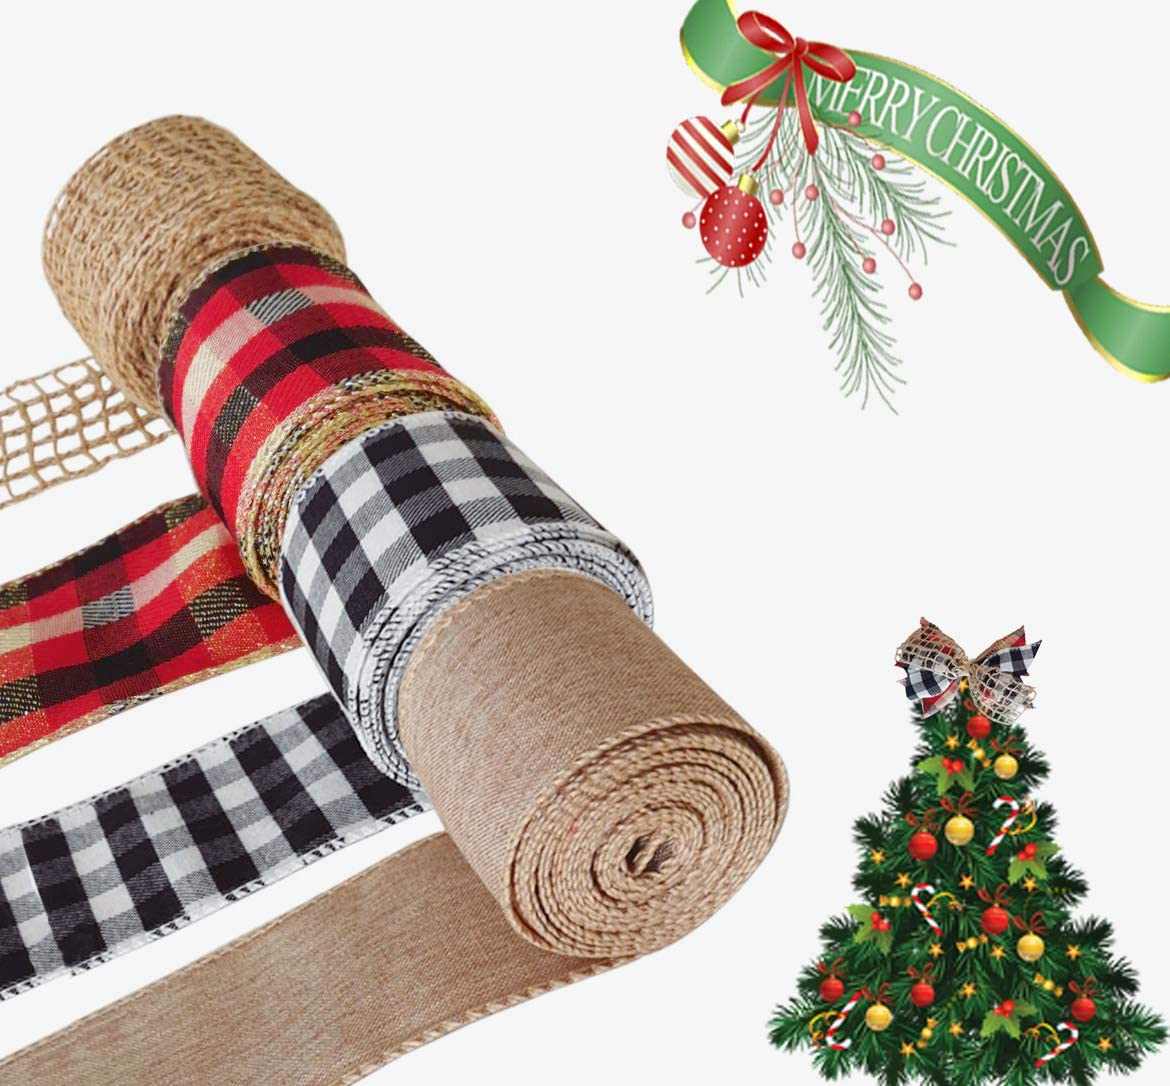 26 Yards 4 Rools Burlap Ribbon for Crafts and Gift Wrapping, Wired Rustic Farhouse Buffalo Plaid Ribbon, 2.5